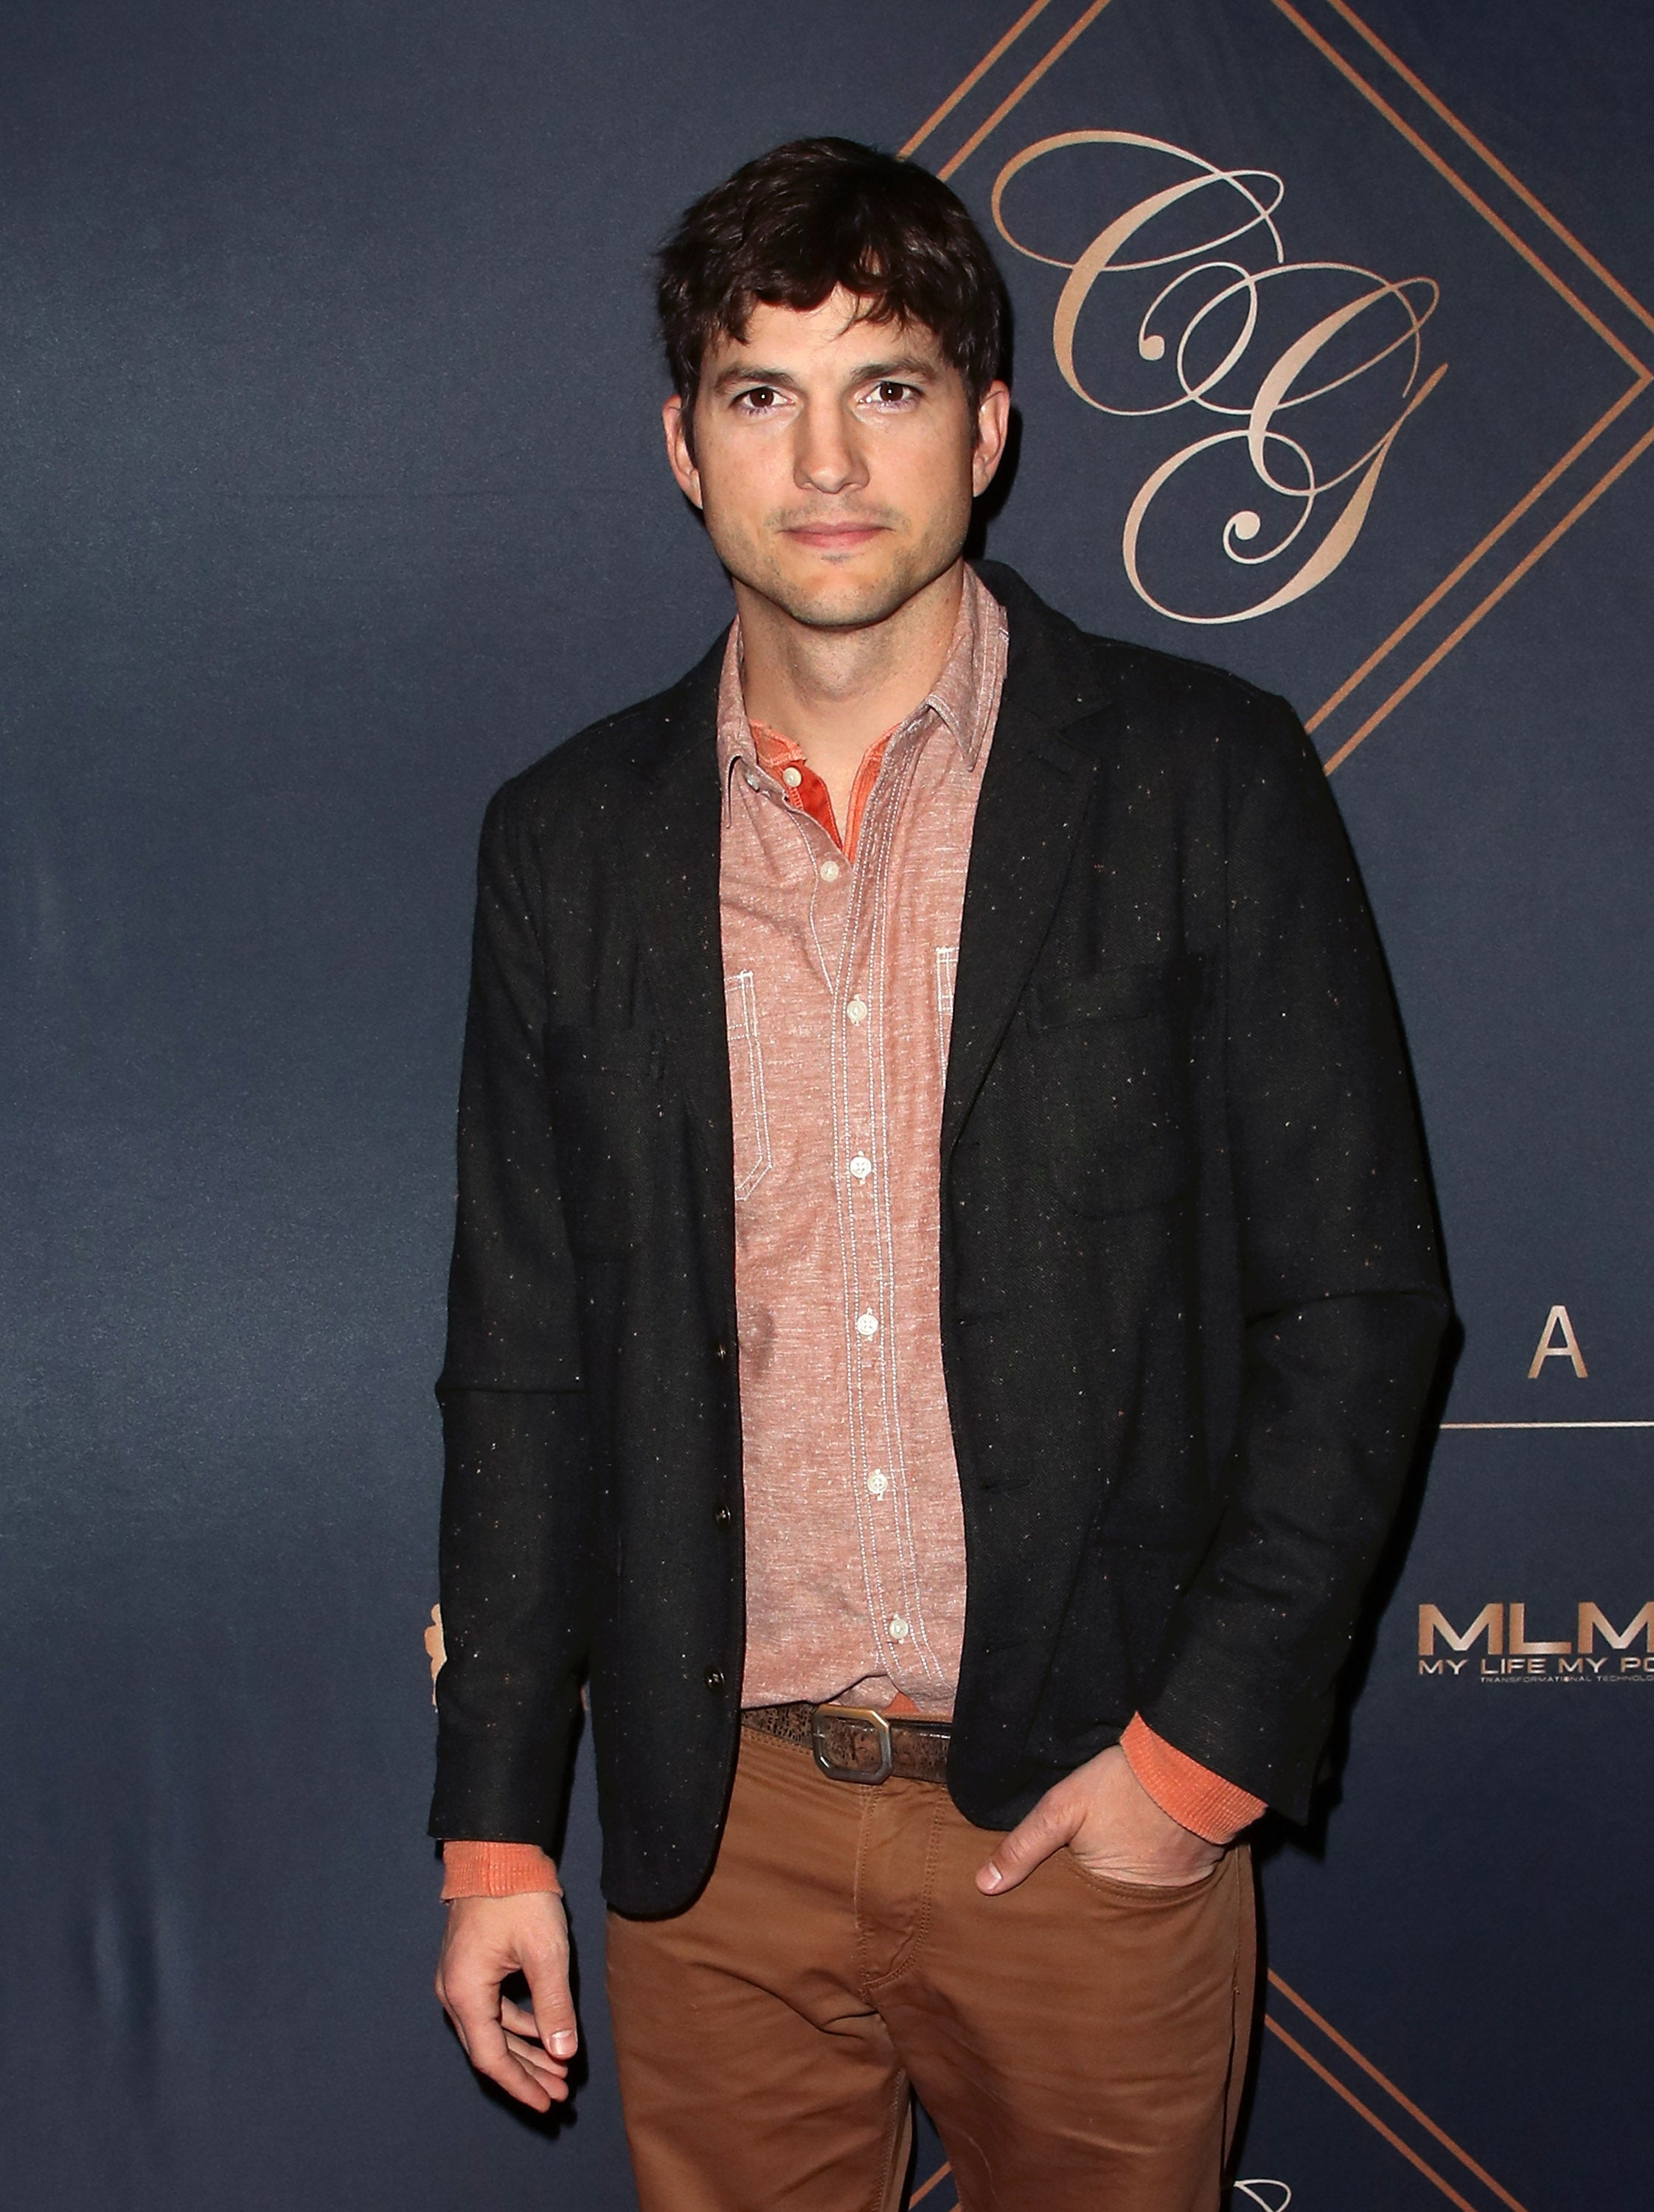 Ashton Kutcher is preparing for a new wedding after a divorce from Demi Moore 11.28.2013 12